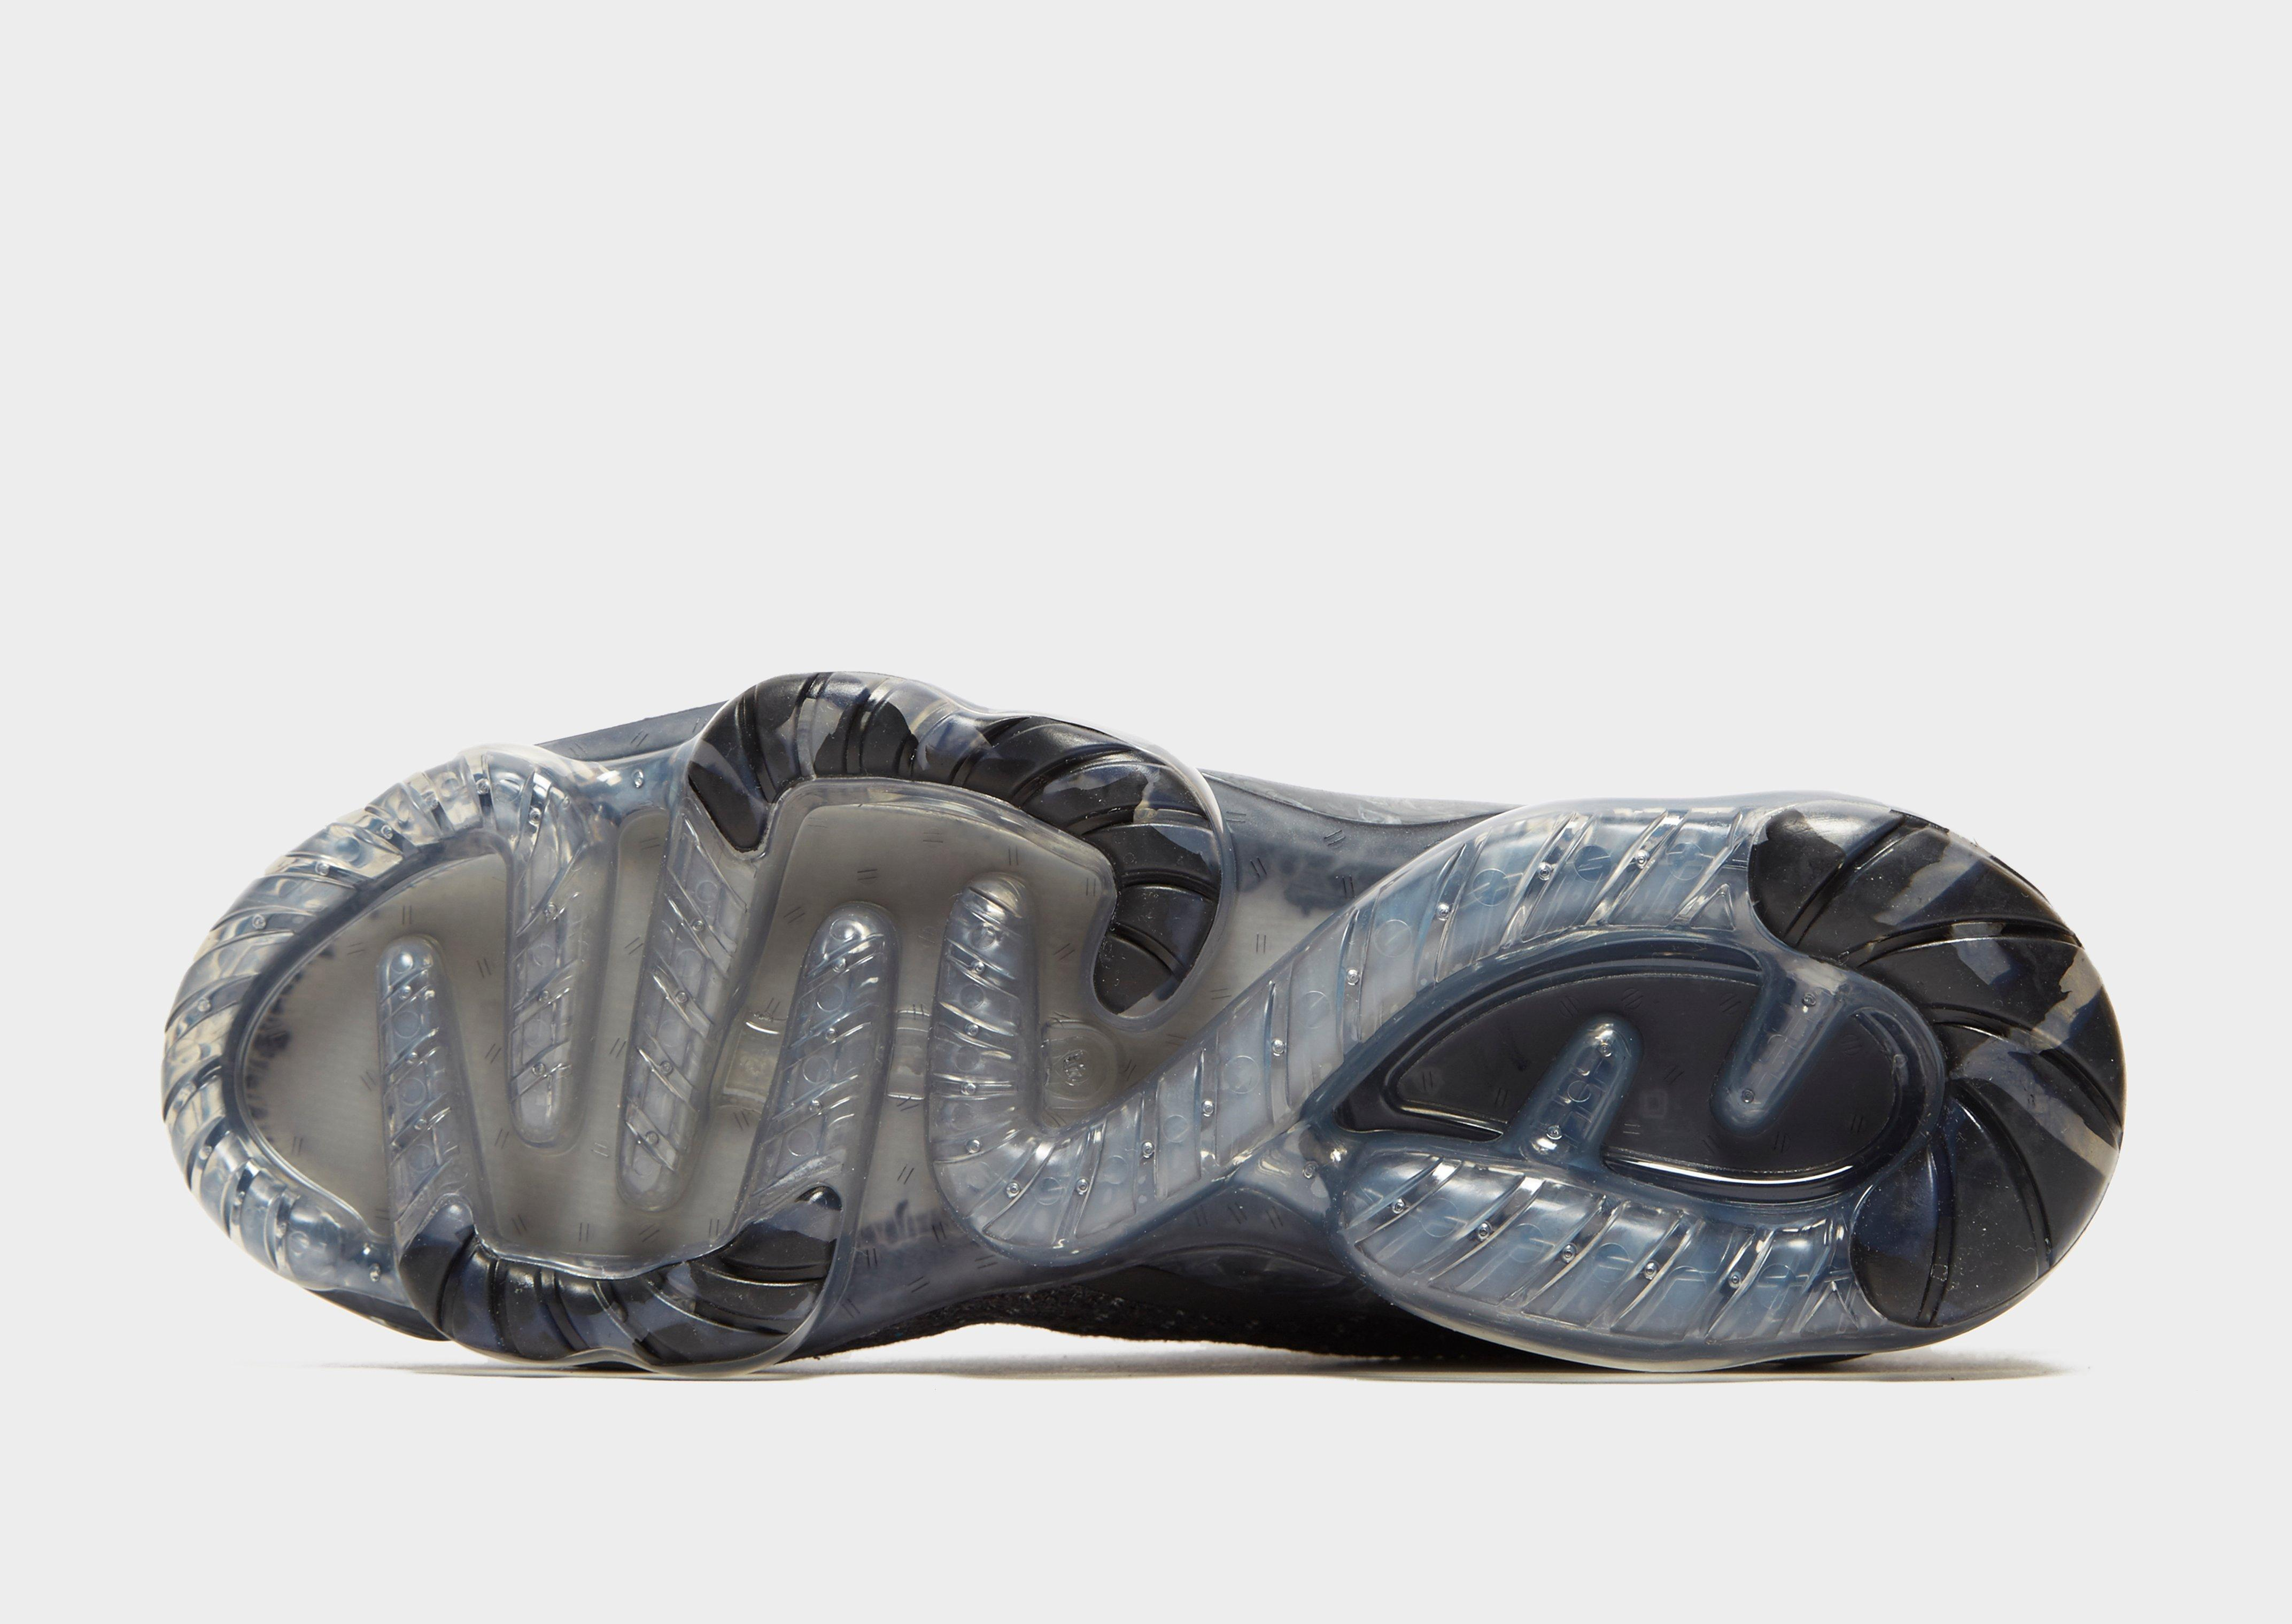 The Nike Air VaporMax 2020 Is Made From 75% Recycled